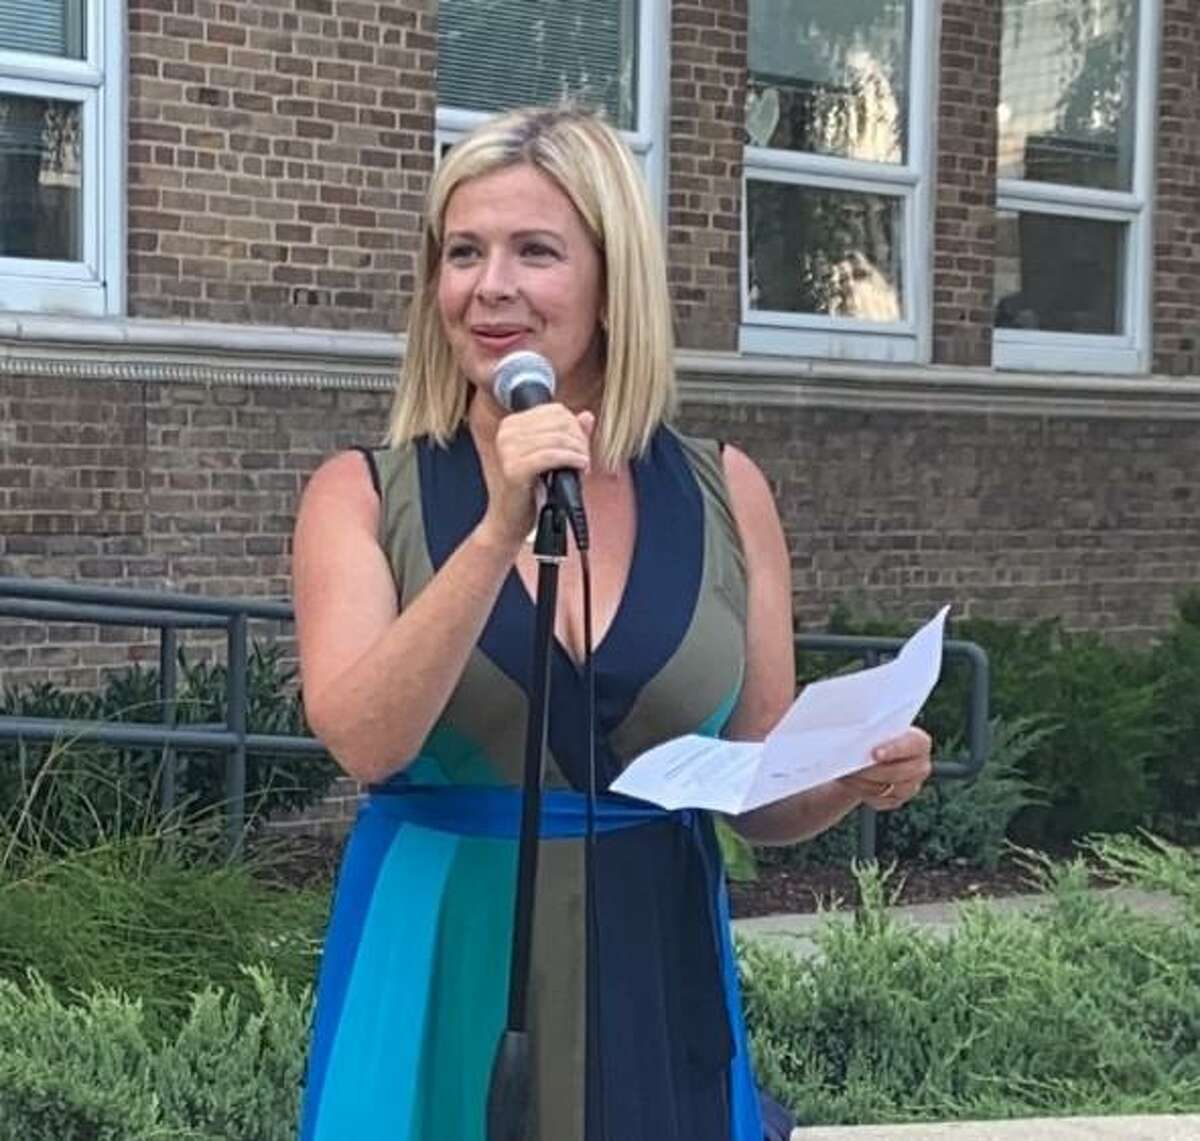 Tara Ochman, a Democrat, announced her candidacy for first selectman in front of Darien Town Hall Thursday, July 15, 2021.